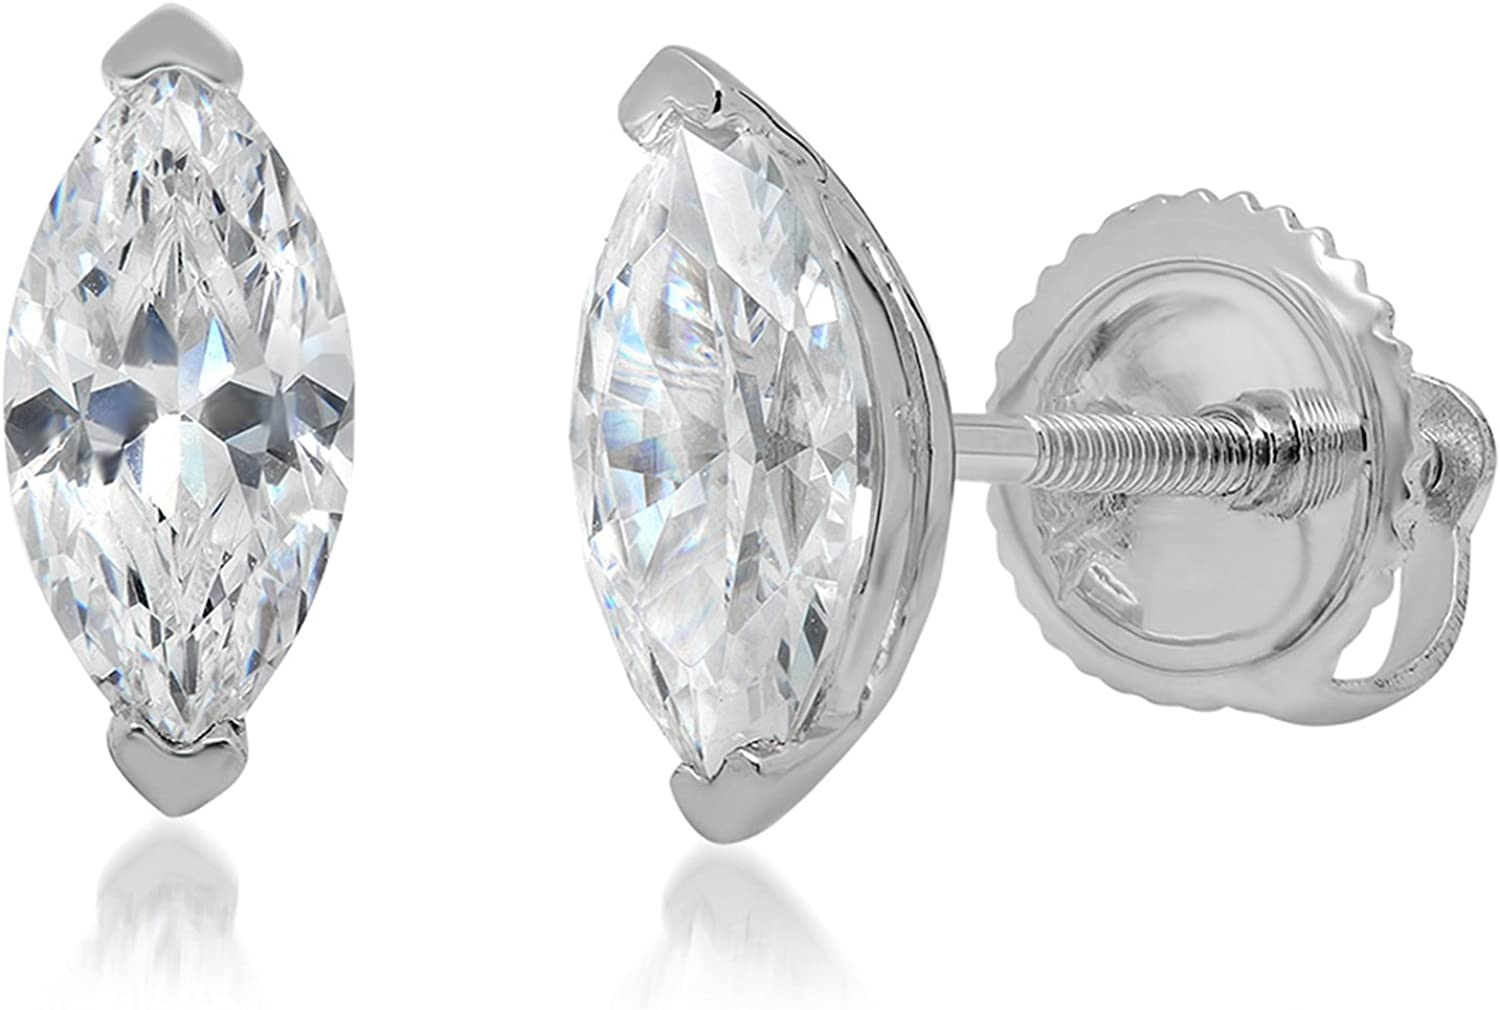 1.0 ct Marquise Cut ideal VVS1 Conflict Free Gemstone Solitaire Genuine Moissanite Designer Stud Earrings Solid 14k White Gold Screw Back